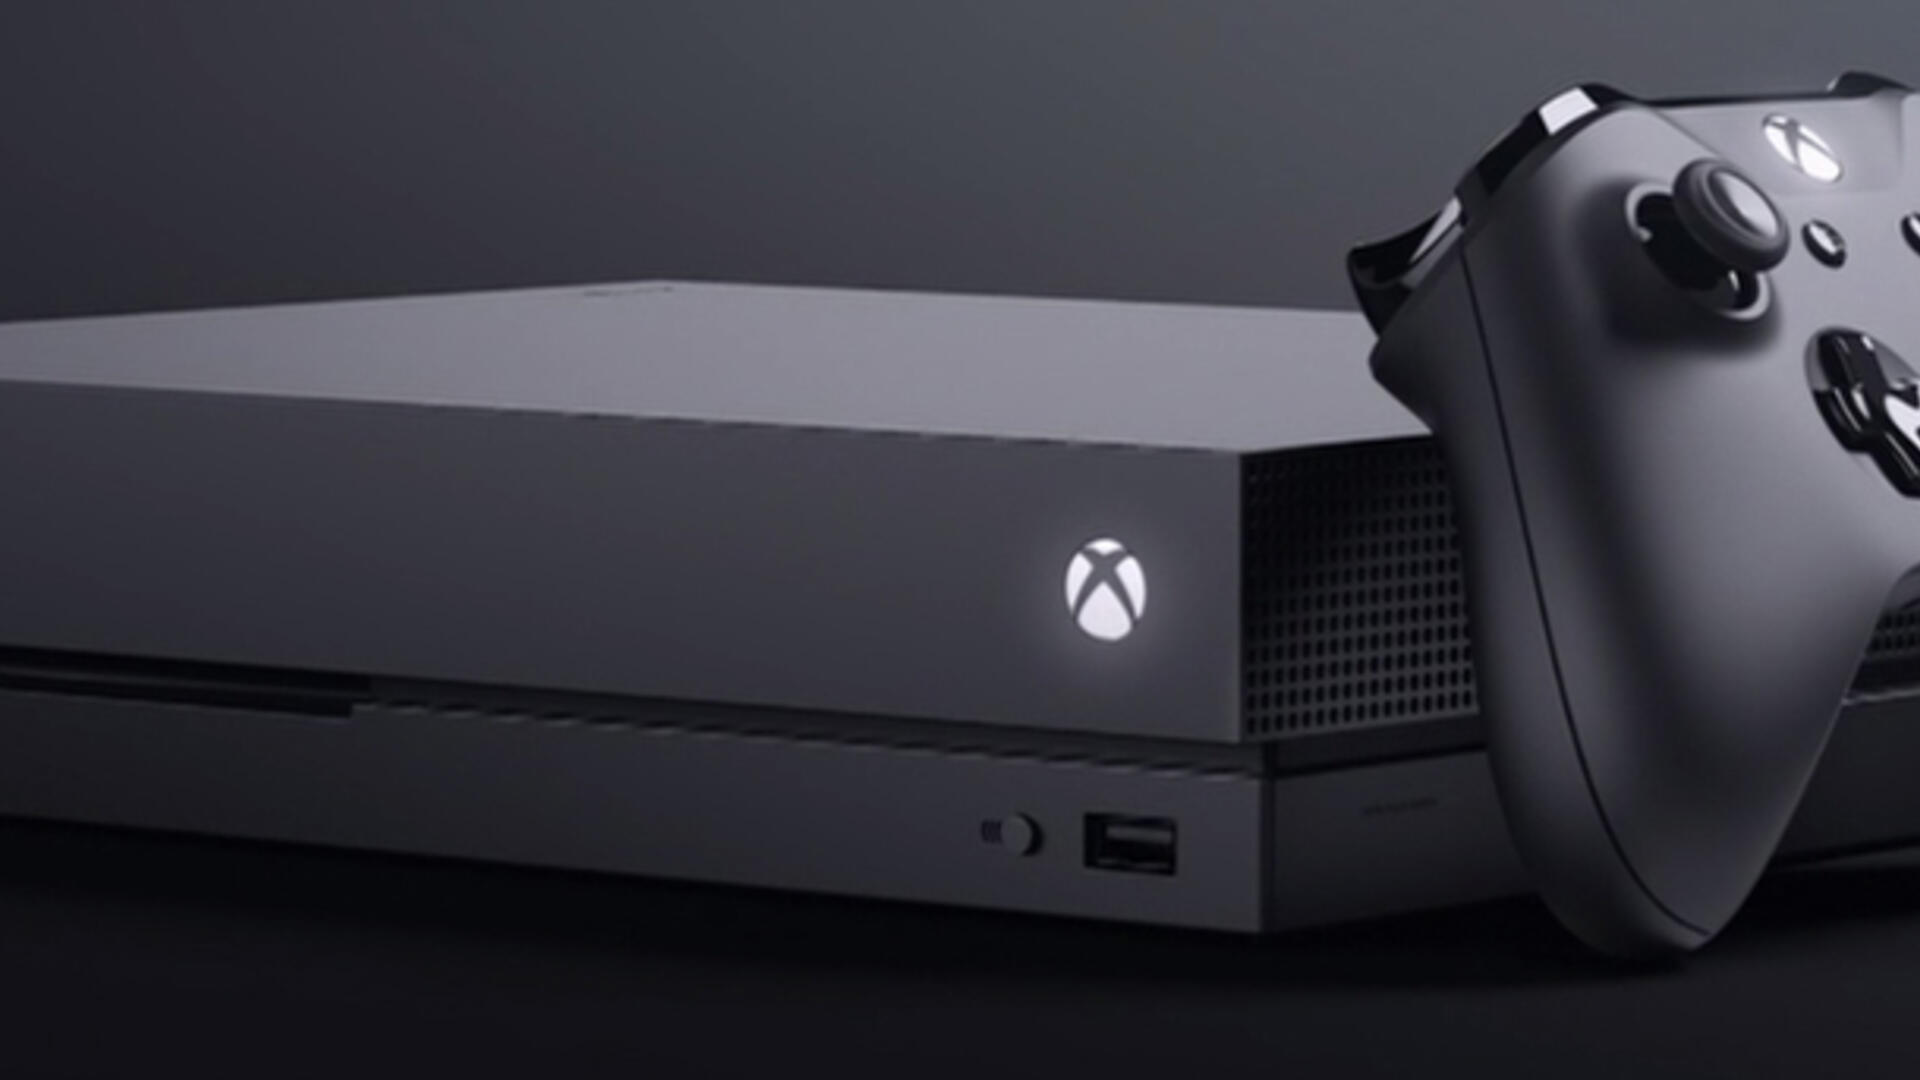 Next-Gen Xbox Reportedly Codenamed 'Anaconda'